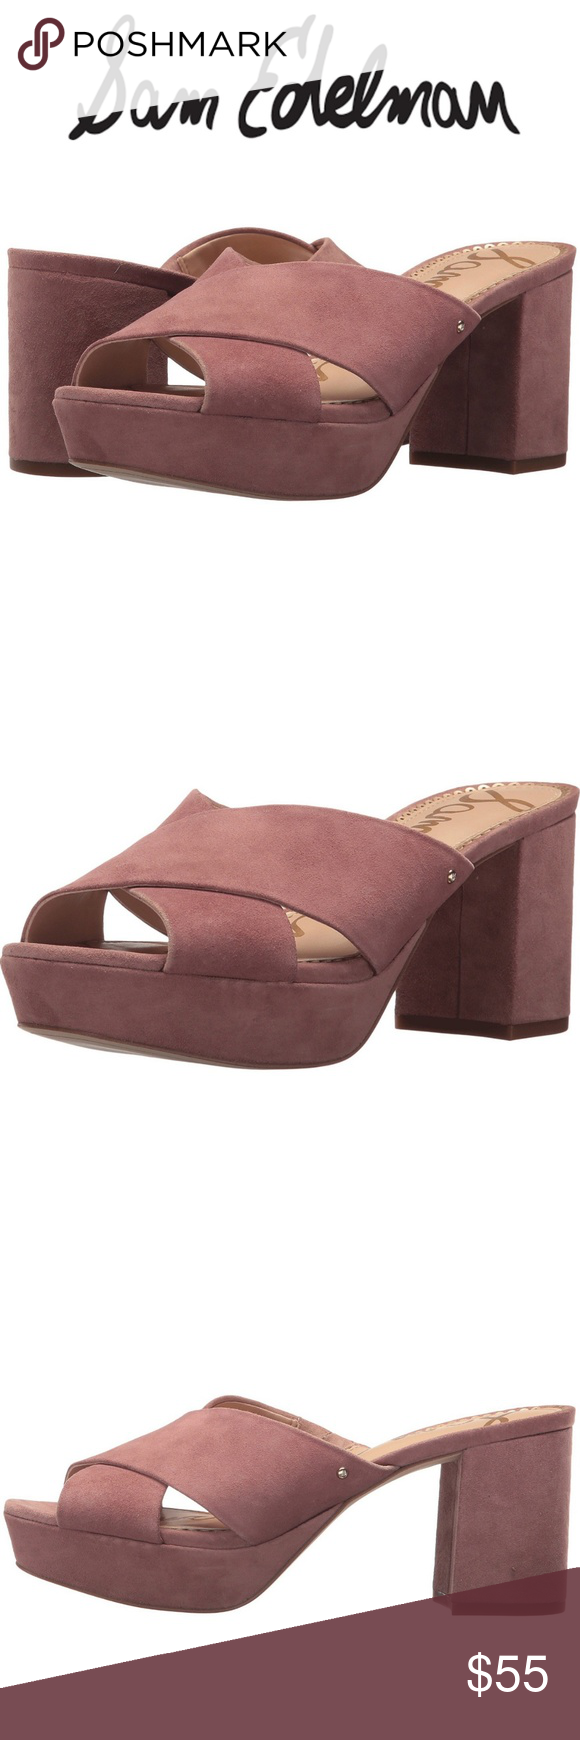 82055e047c3 NIB Sam Edelman Jayne Platform Mules Super cute wedge mules from Sam Edelman  that are sold